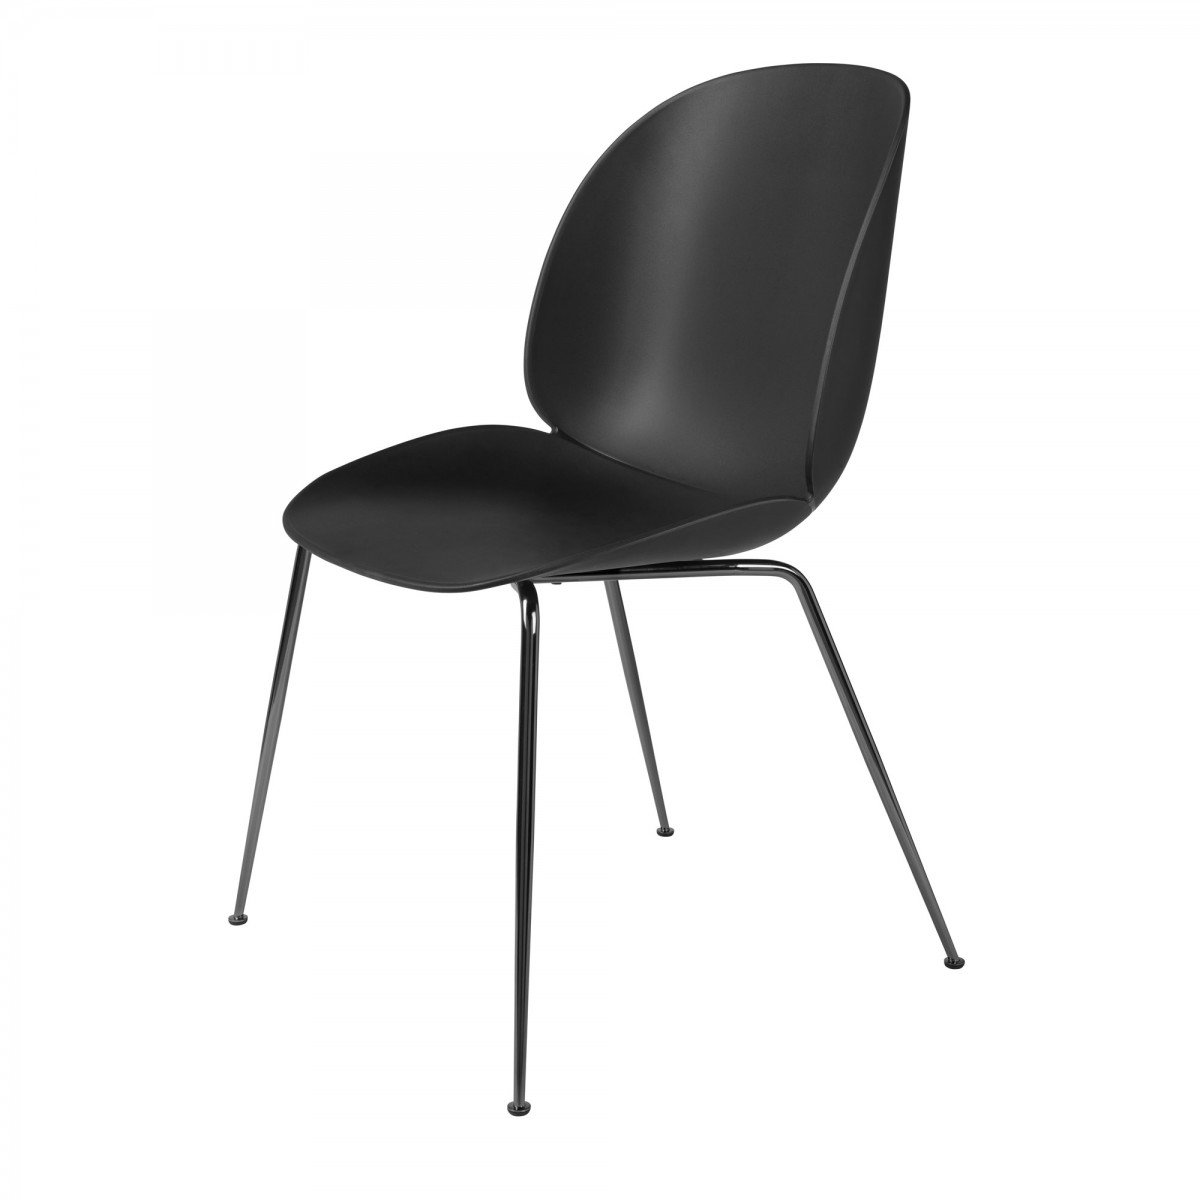 black metal dining chairs. BEETLE Dining Chair - Black \u0026 Metal Chairs I